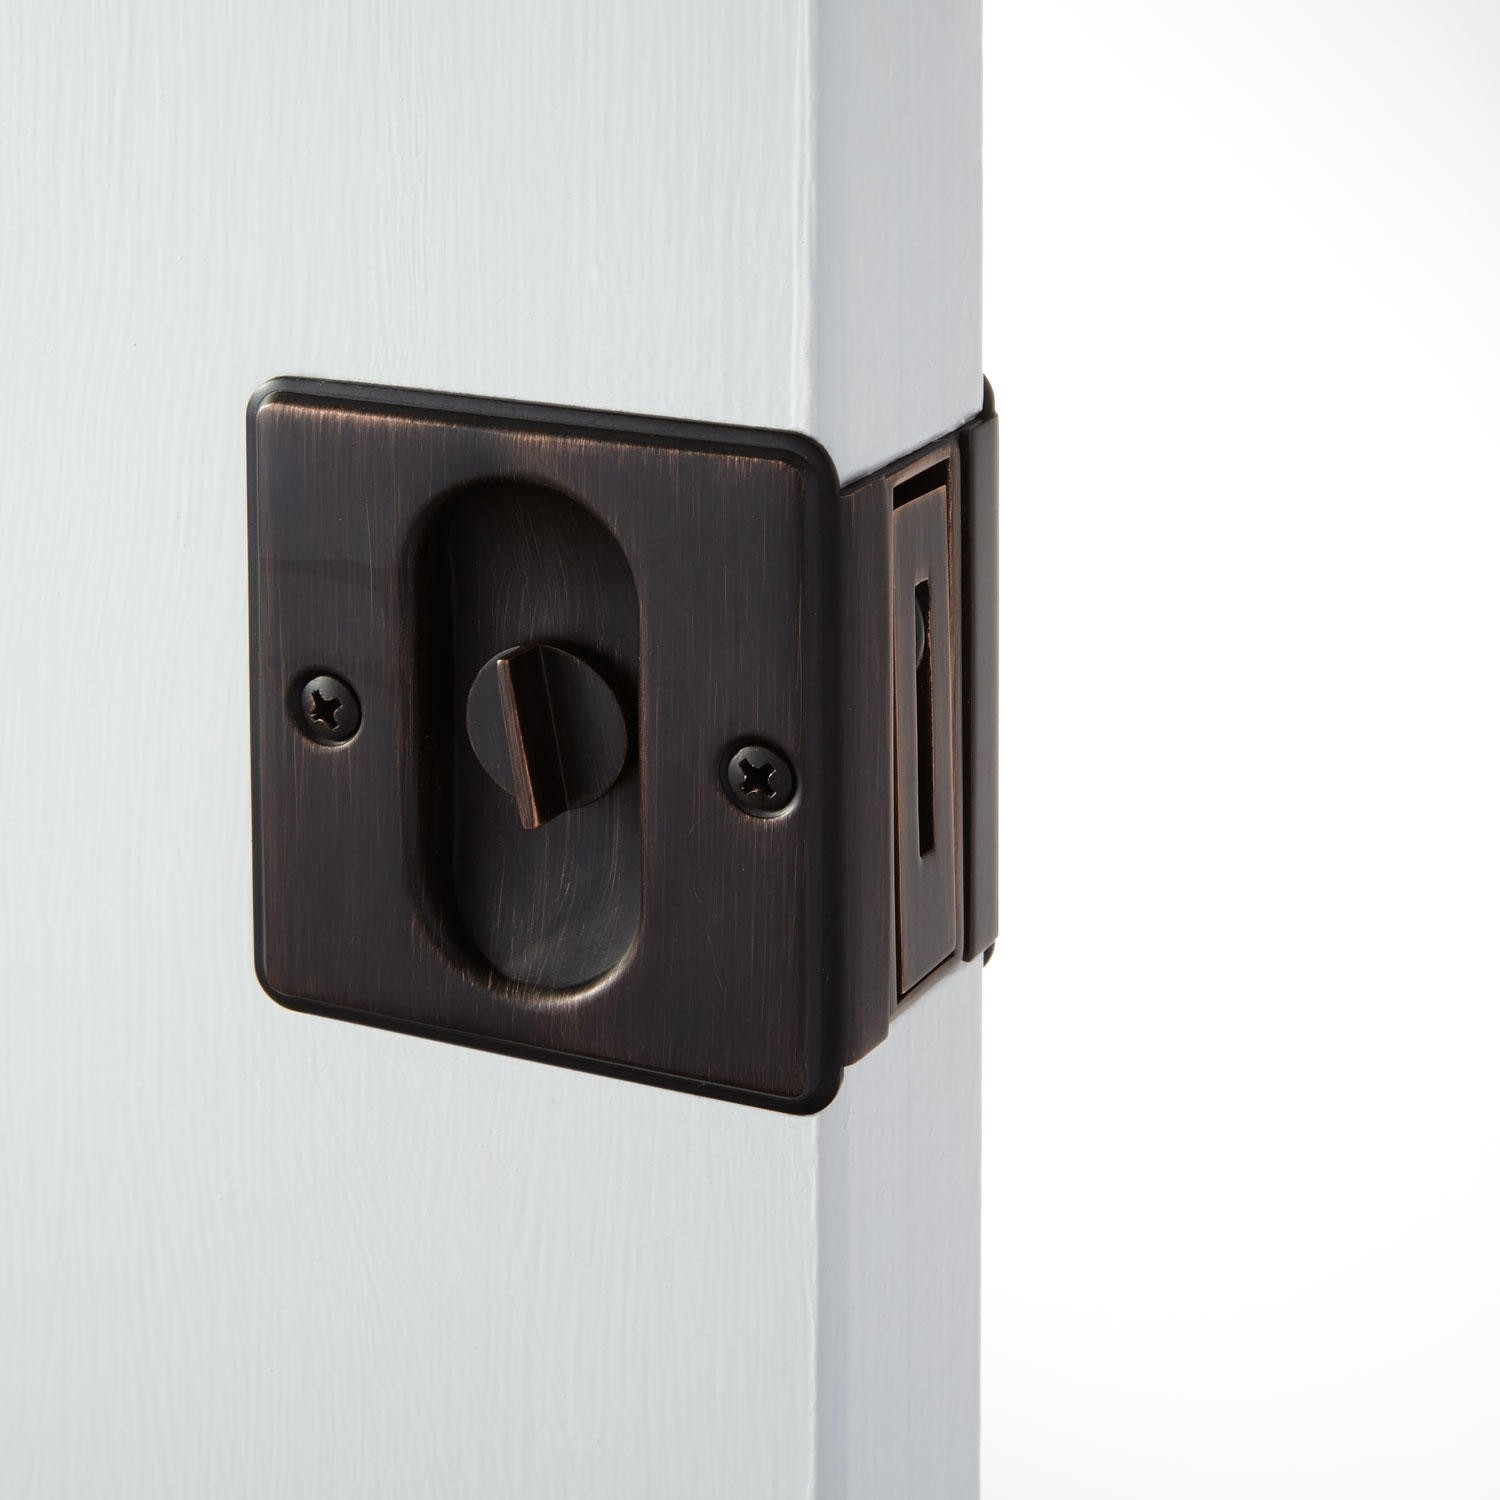 Pocket Door Hardware Oil Rubbed Bronze pocket door hardware pilotproject 1500 X 1500